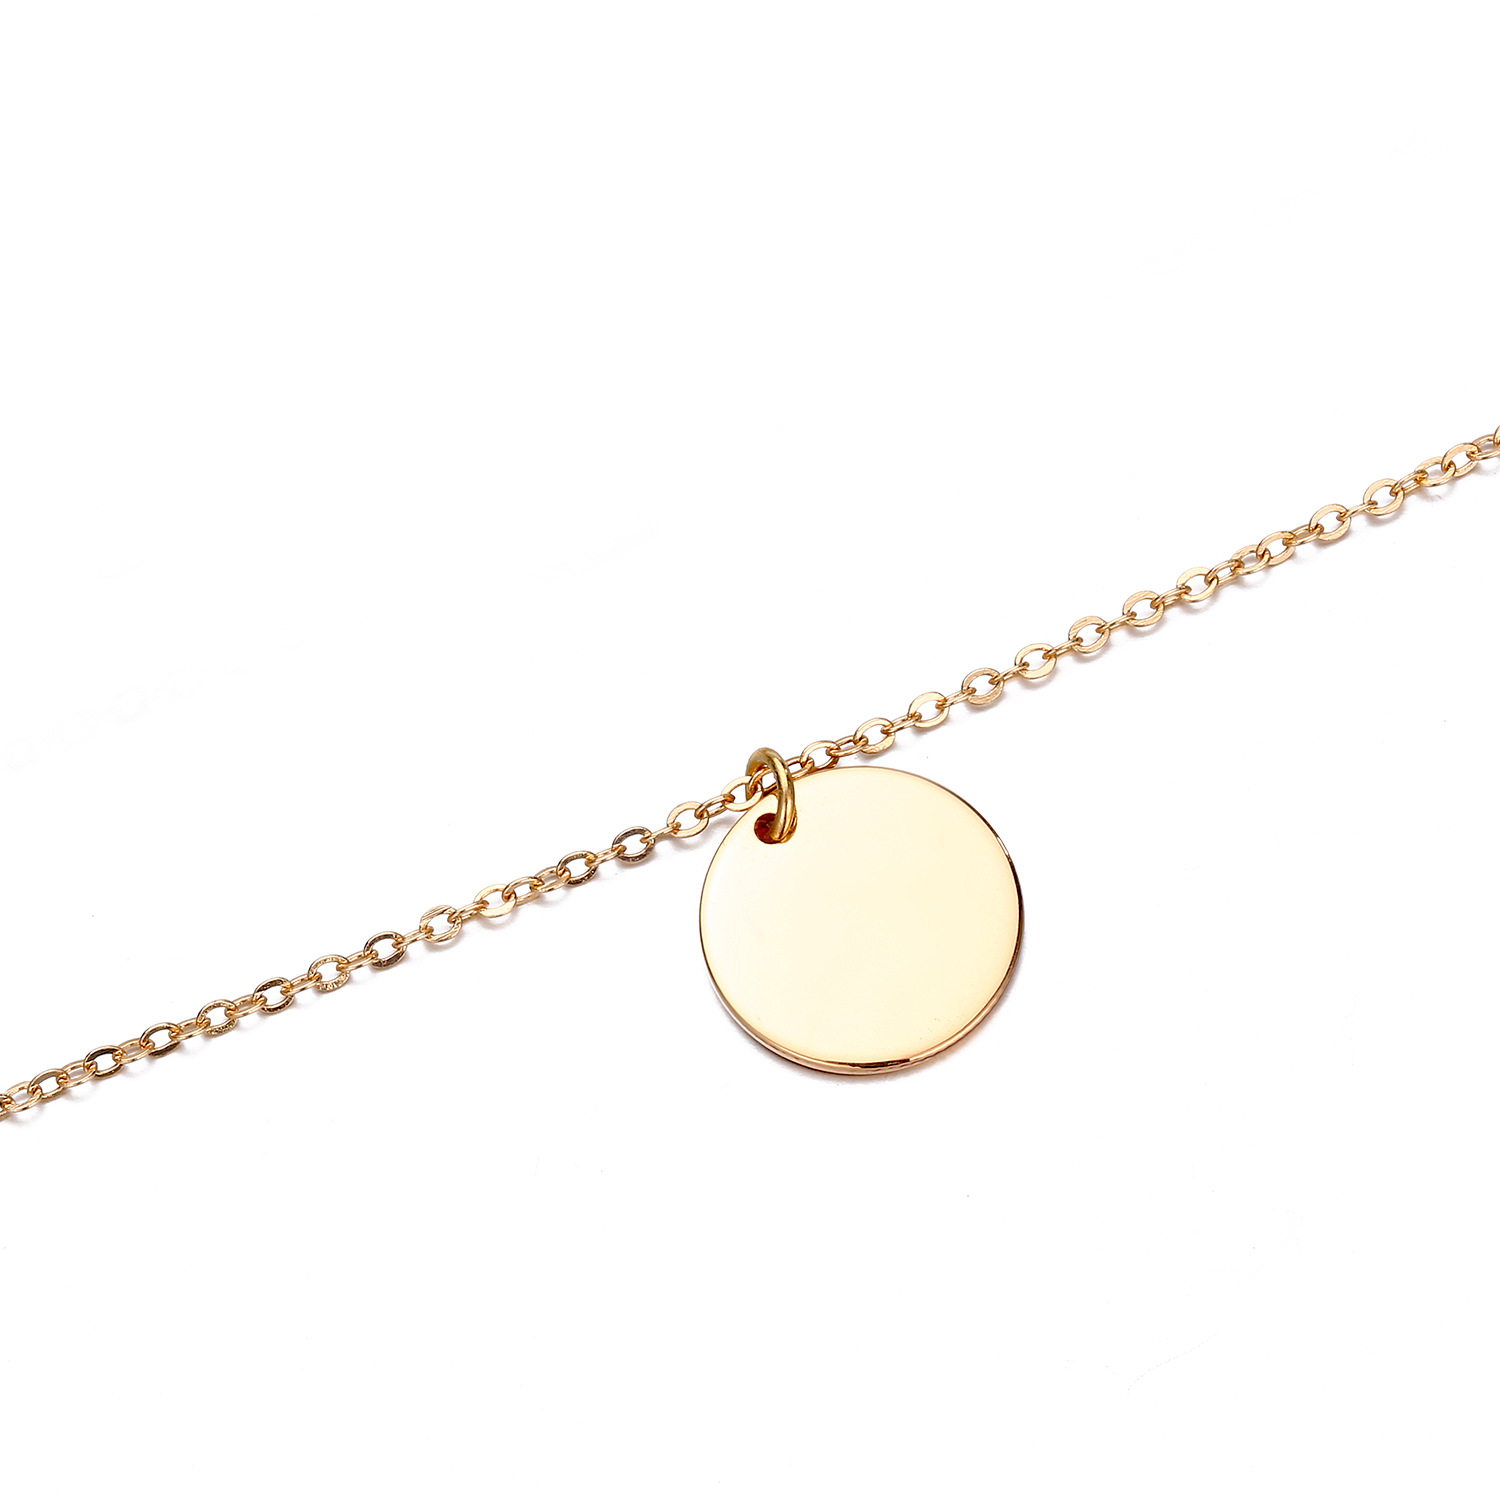 accessories necklace geometric suit necklace L316 stainless steel two-piece necklace clavicle chain wholesale nihaojewelry NHJJ221057